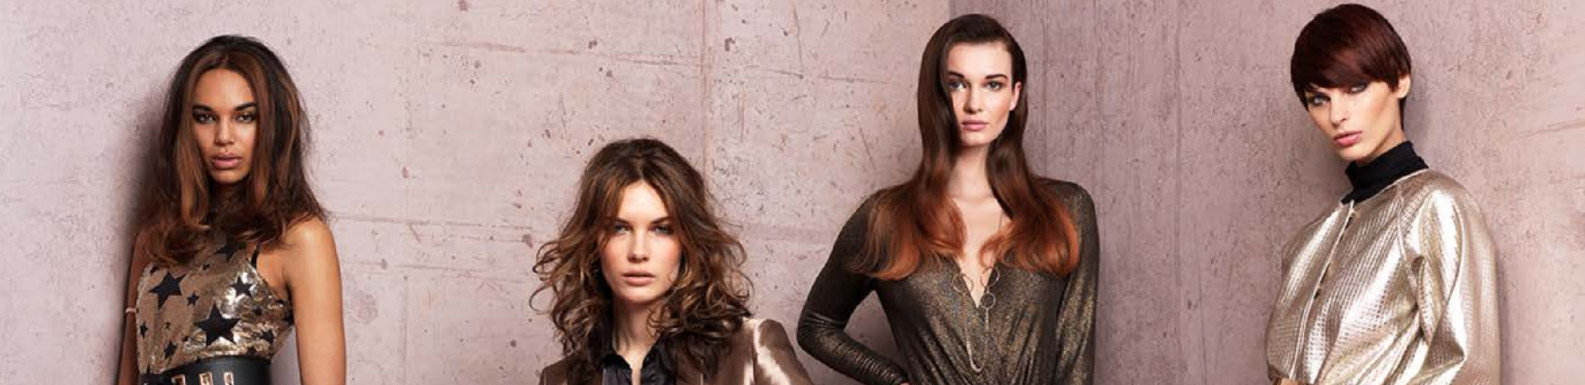 Tigi Brunette Colours 2016